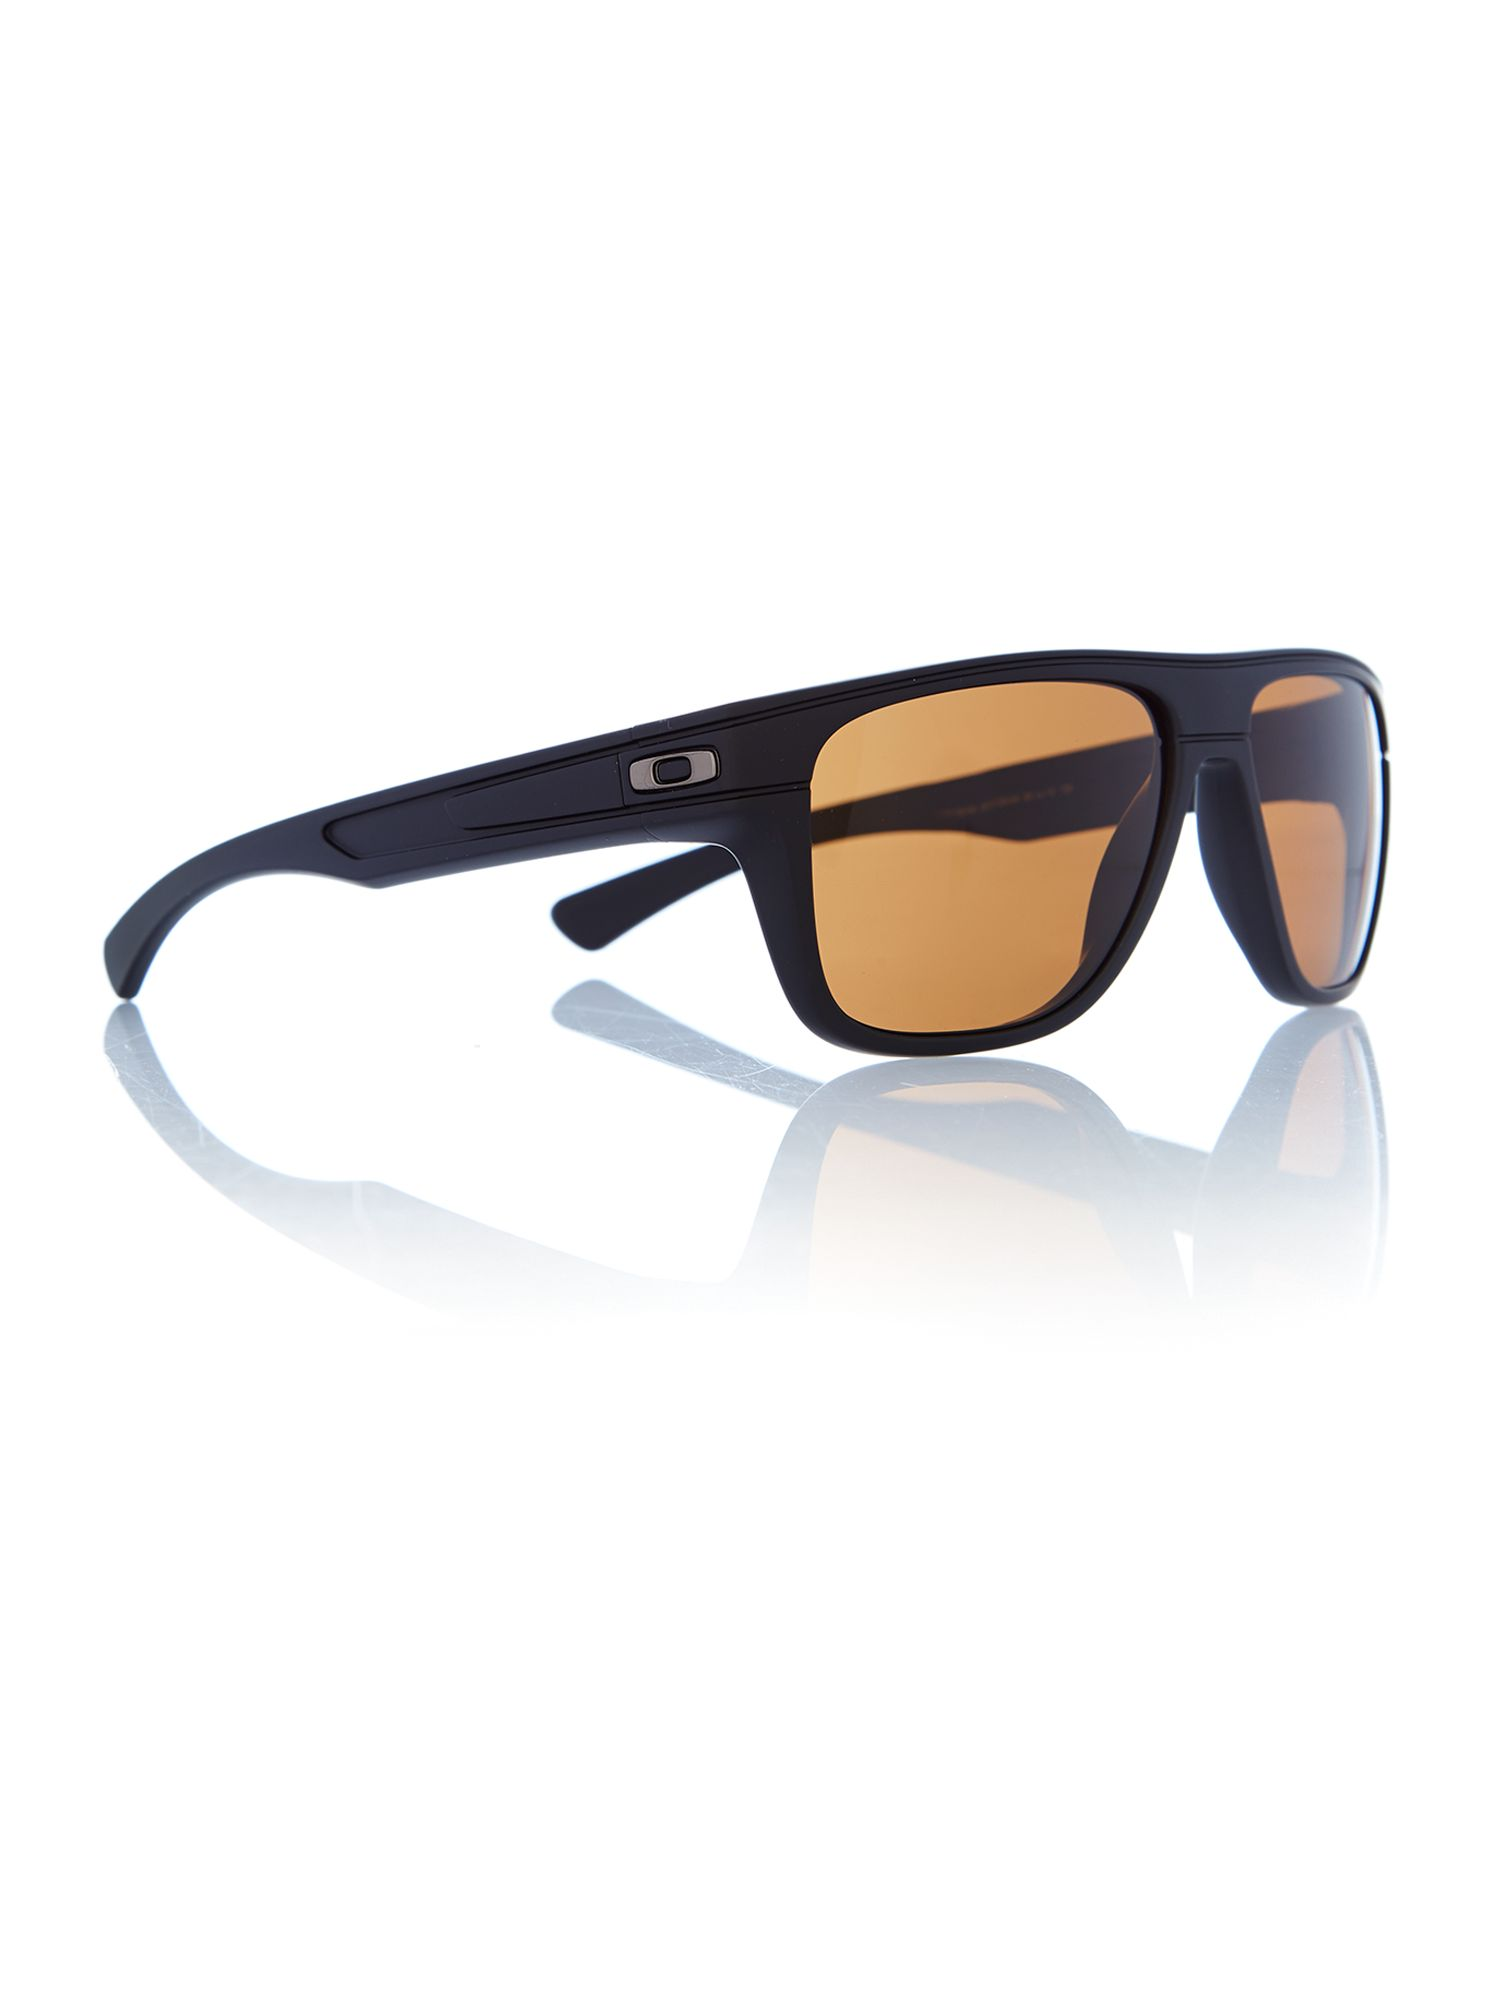 Mens Matte Black Breadbox Sunglasses